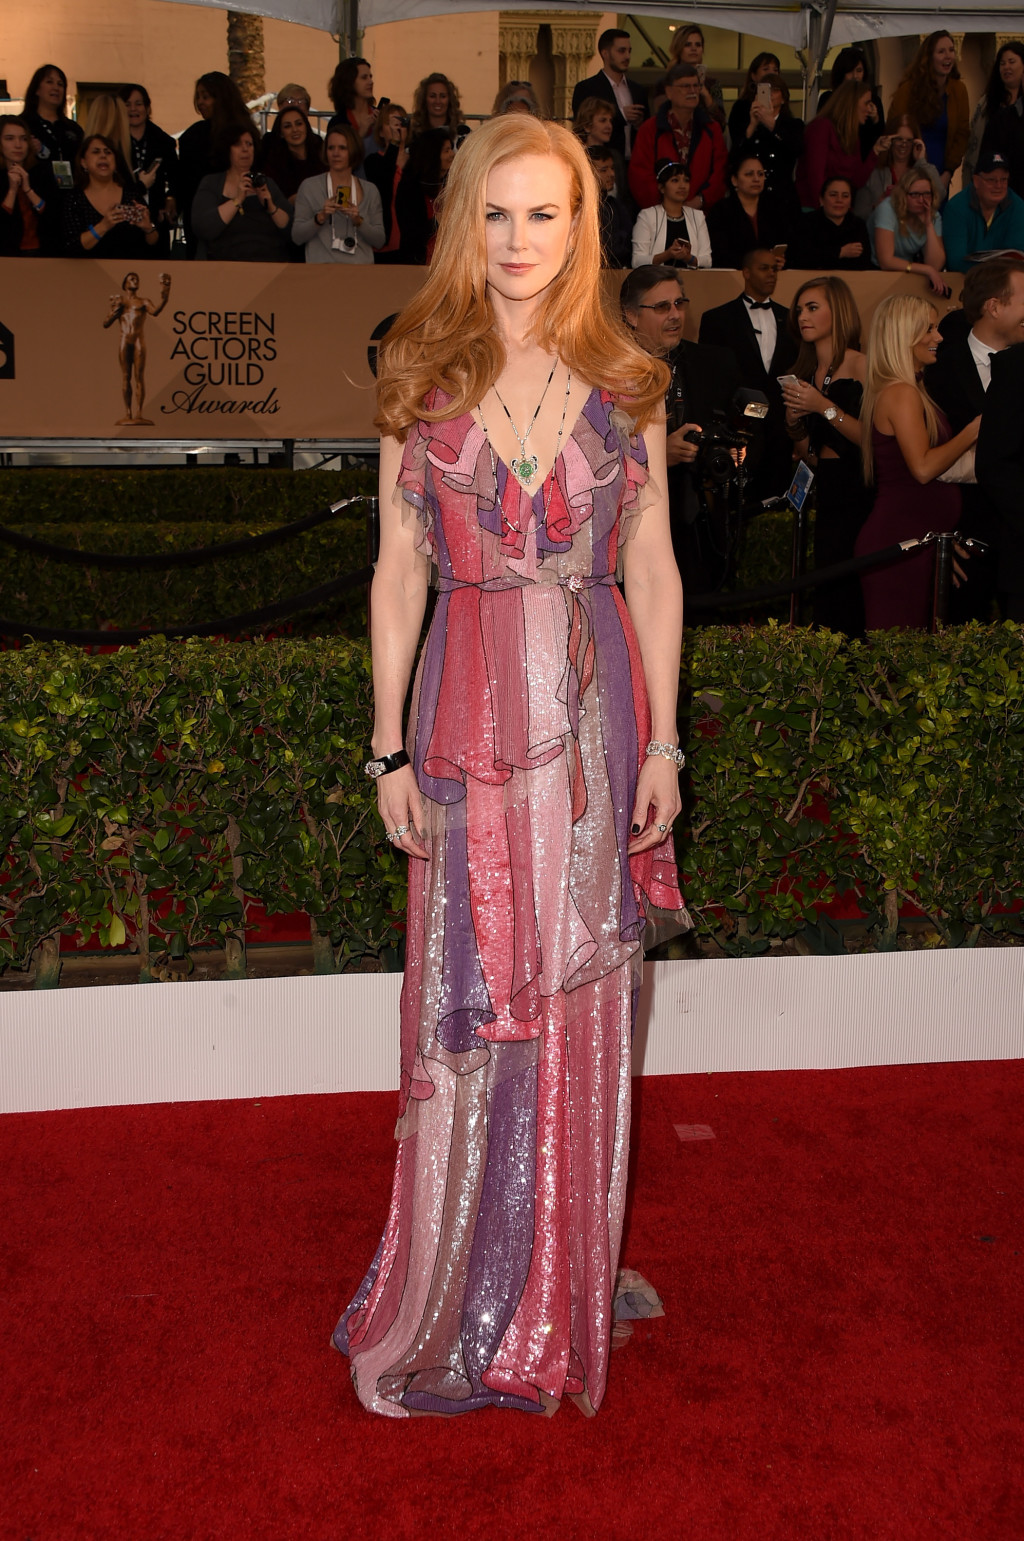 Nicole Kidman in a multi-color Gucci gown at the 2016 SAG Awards